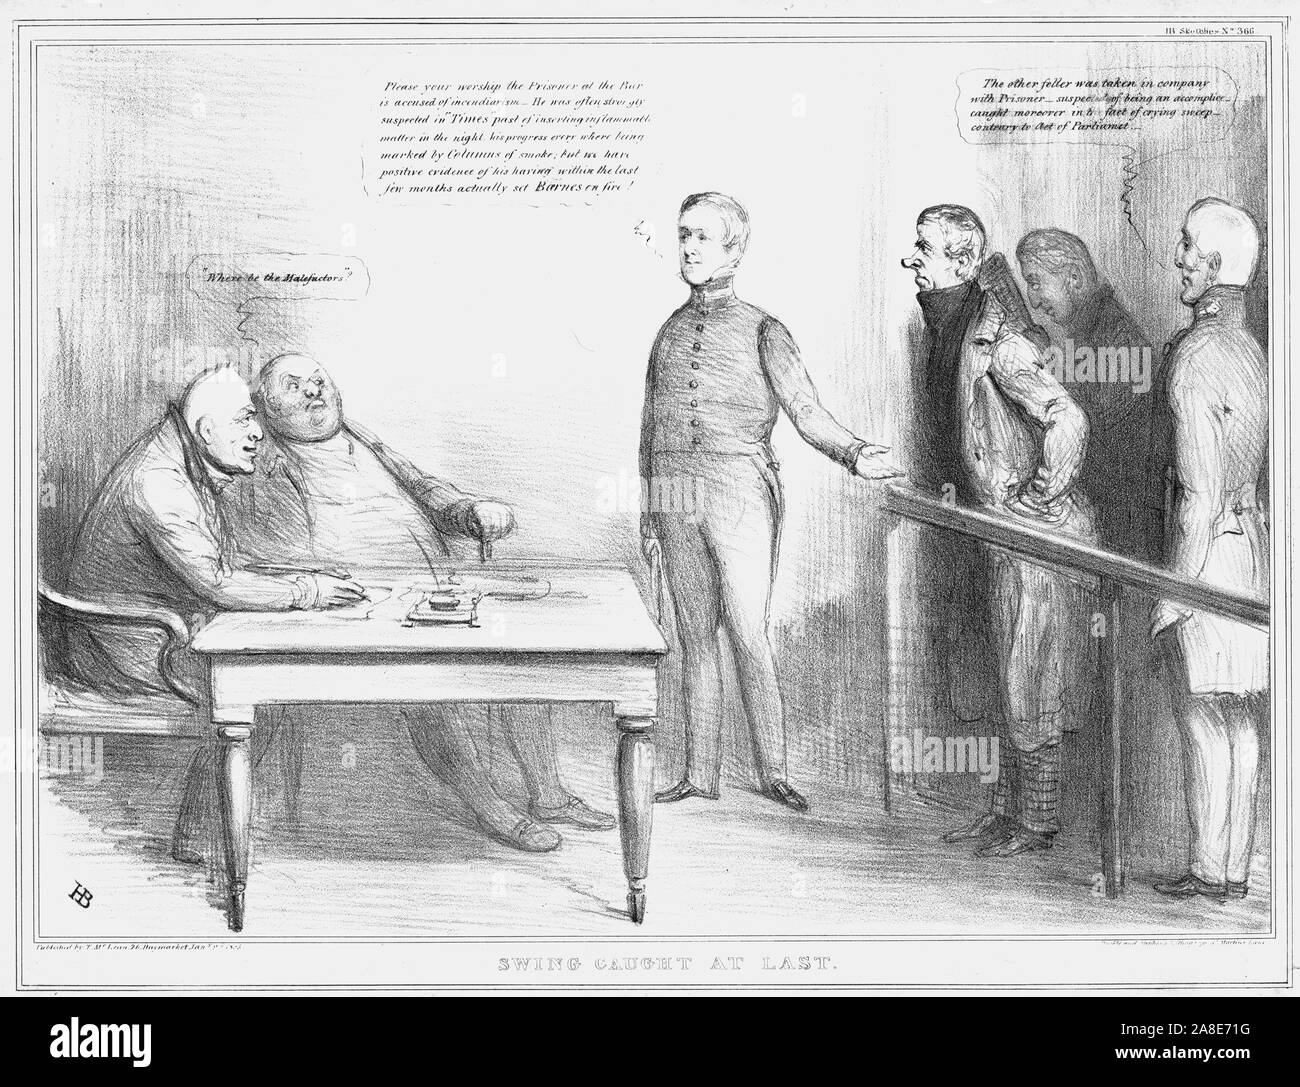 'Swing Caught at Last', 1835. Former Lord Chancellor Henry Brougham stands in the dock, as Sir Robert Peel explains his crime of 'incendiarism' to 'judge' King William IV. On the right is the Duke of Wellington. Satirical cartoon on British politics by 'H.B.' (John Doyle). [Thomas McLean, London, 1835] Stock Photo